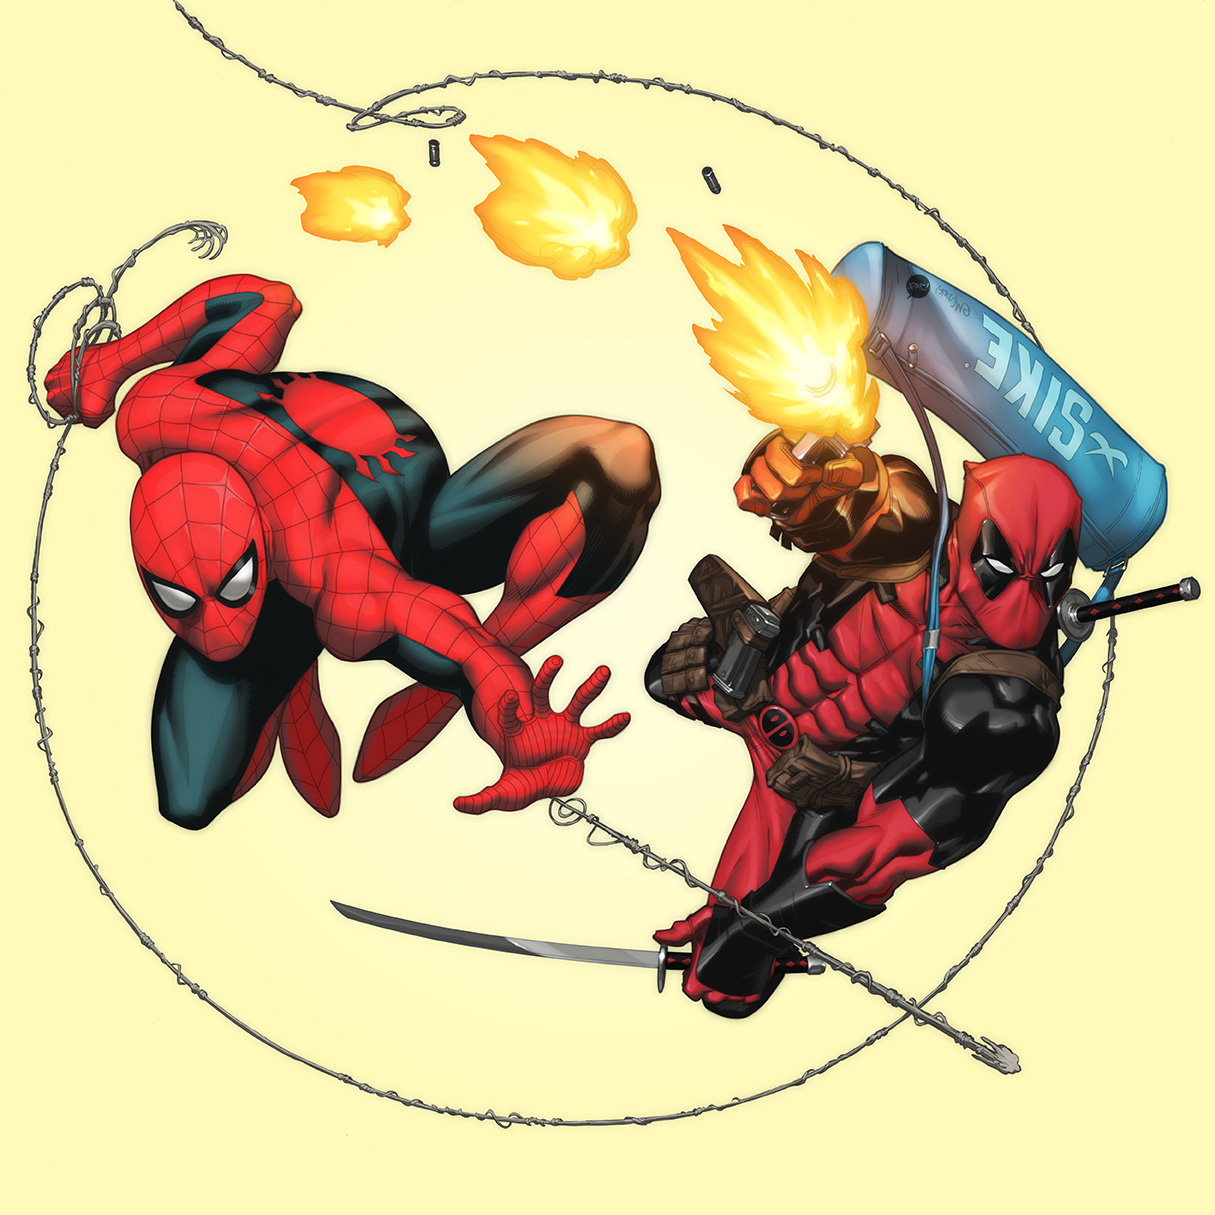 Spidey and Deadpool by pacman23